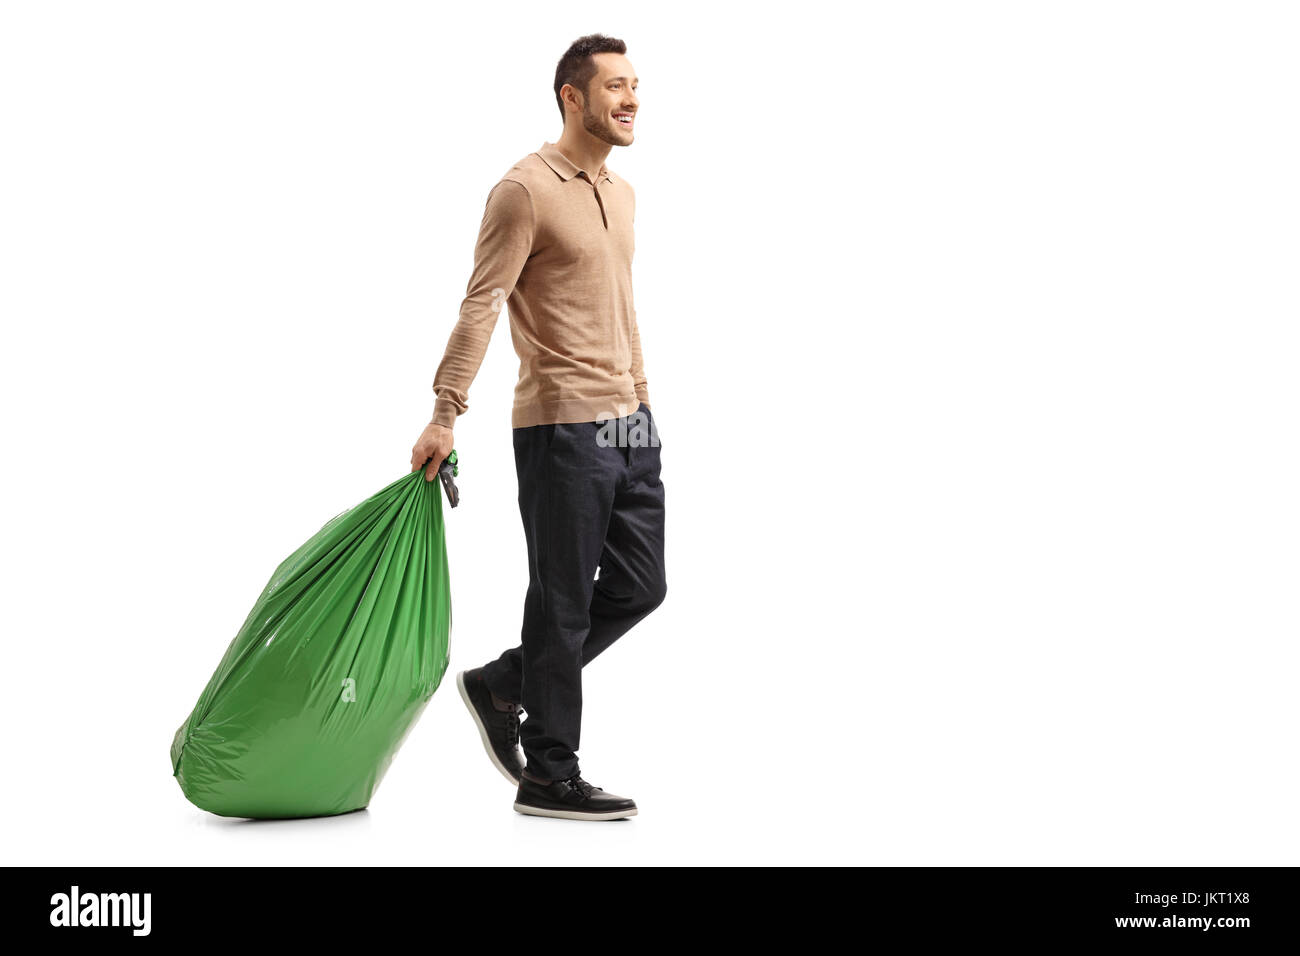 Full length profile shot of a guy dragging a garbage bag isolated on white background - Stock Image